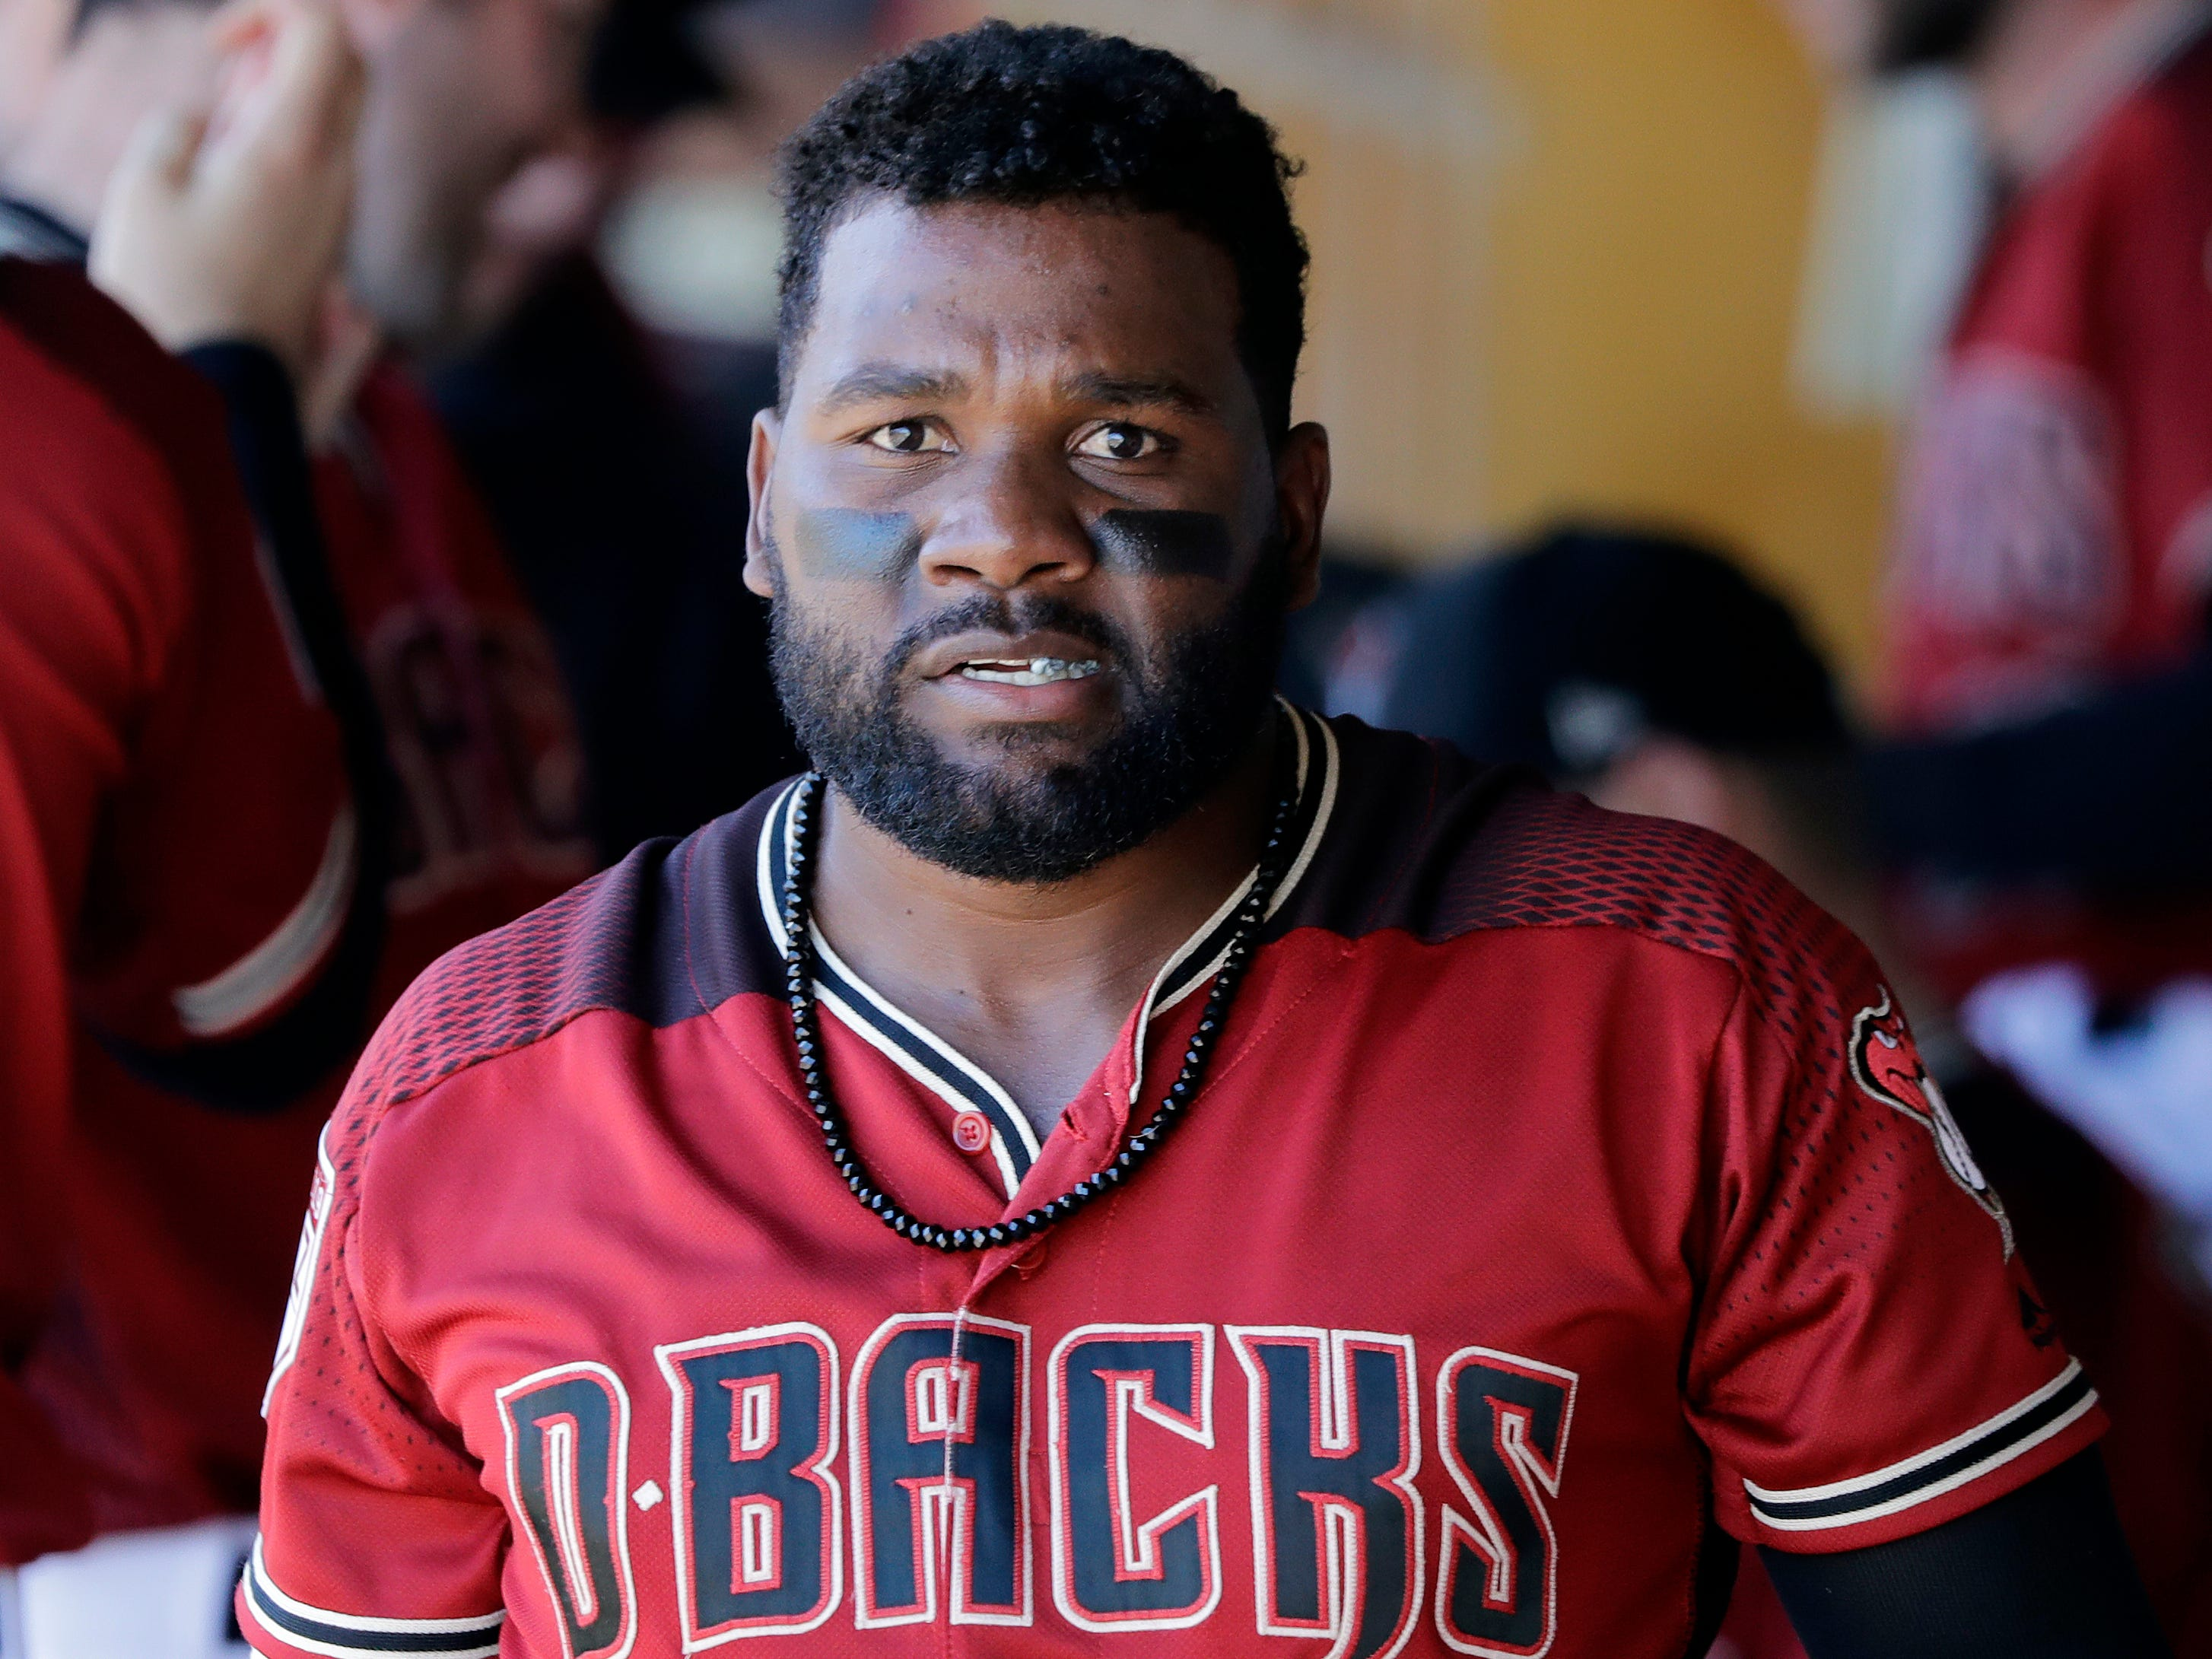 Arizona Diamondbacks' Abraham Almonte walks in the dugout during a spring training baseball game Thursday, March 14, 2019, in Scottsdale, Ariz.